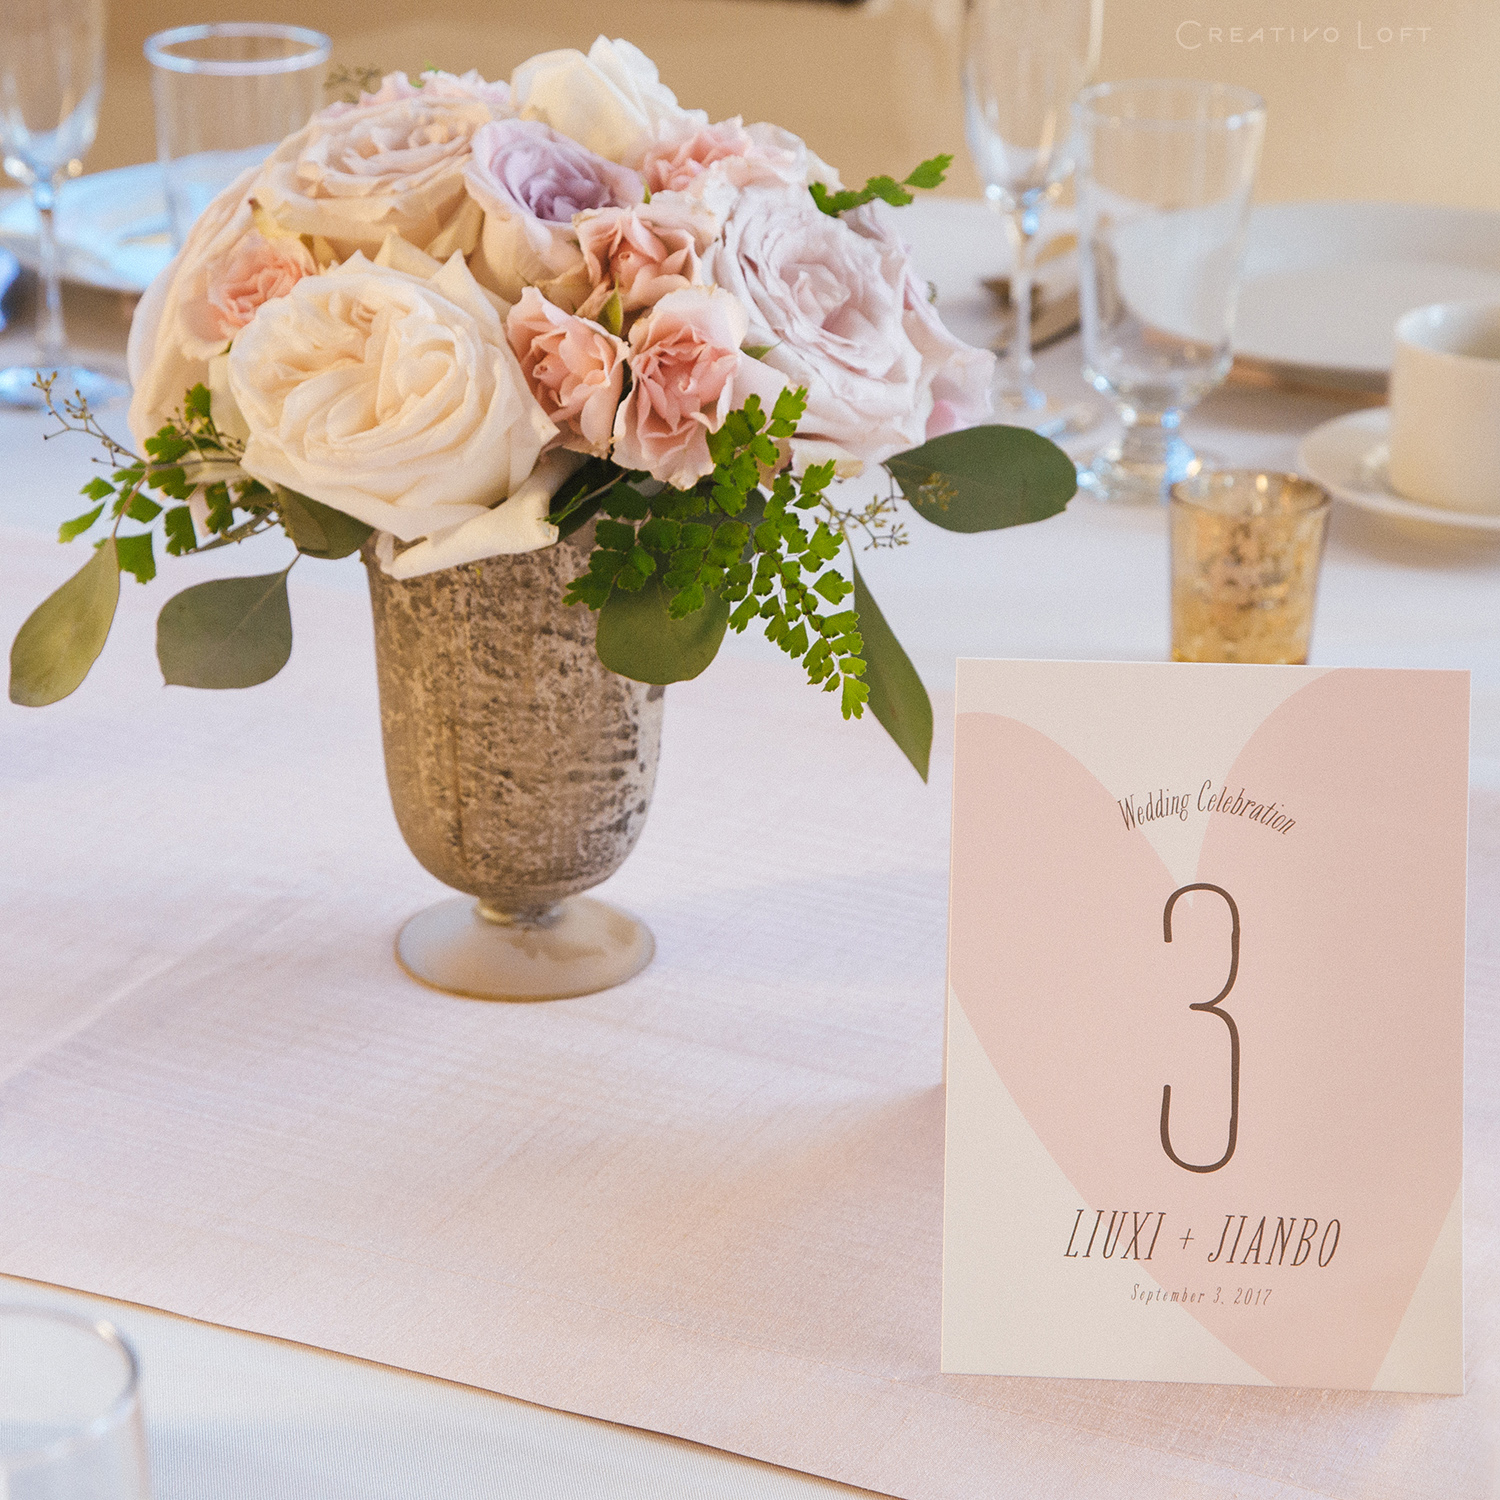 04-CreativoLoft-blush-brunch-wedding.jpg